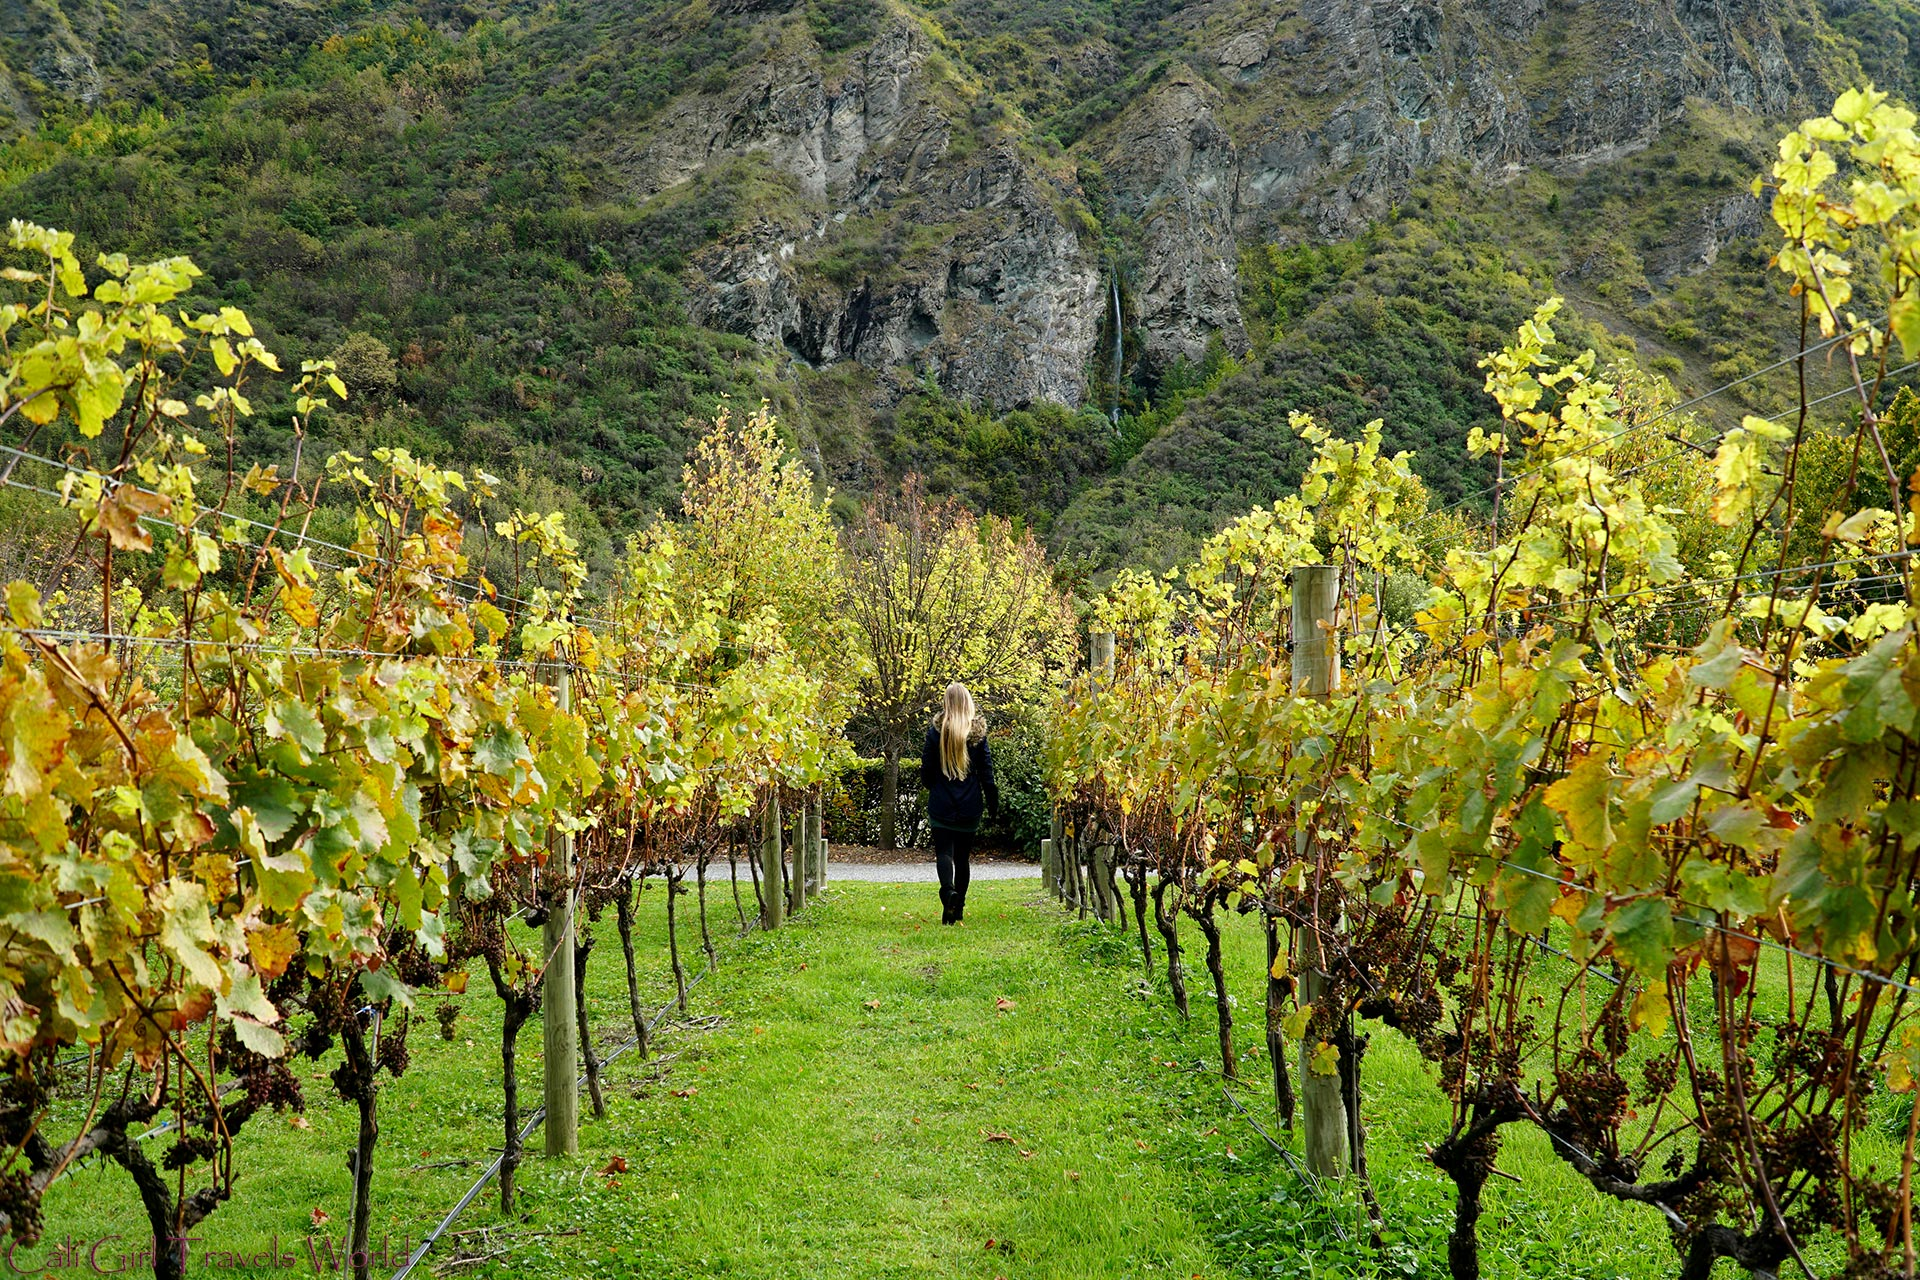 Blonde Female Traveler walking through a vineyard in Otago wine region on the South Island with a waterfall in the background.